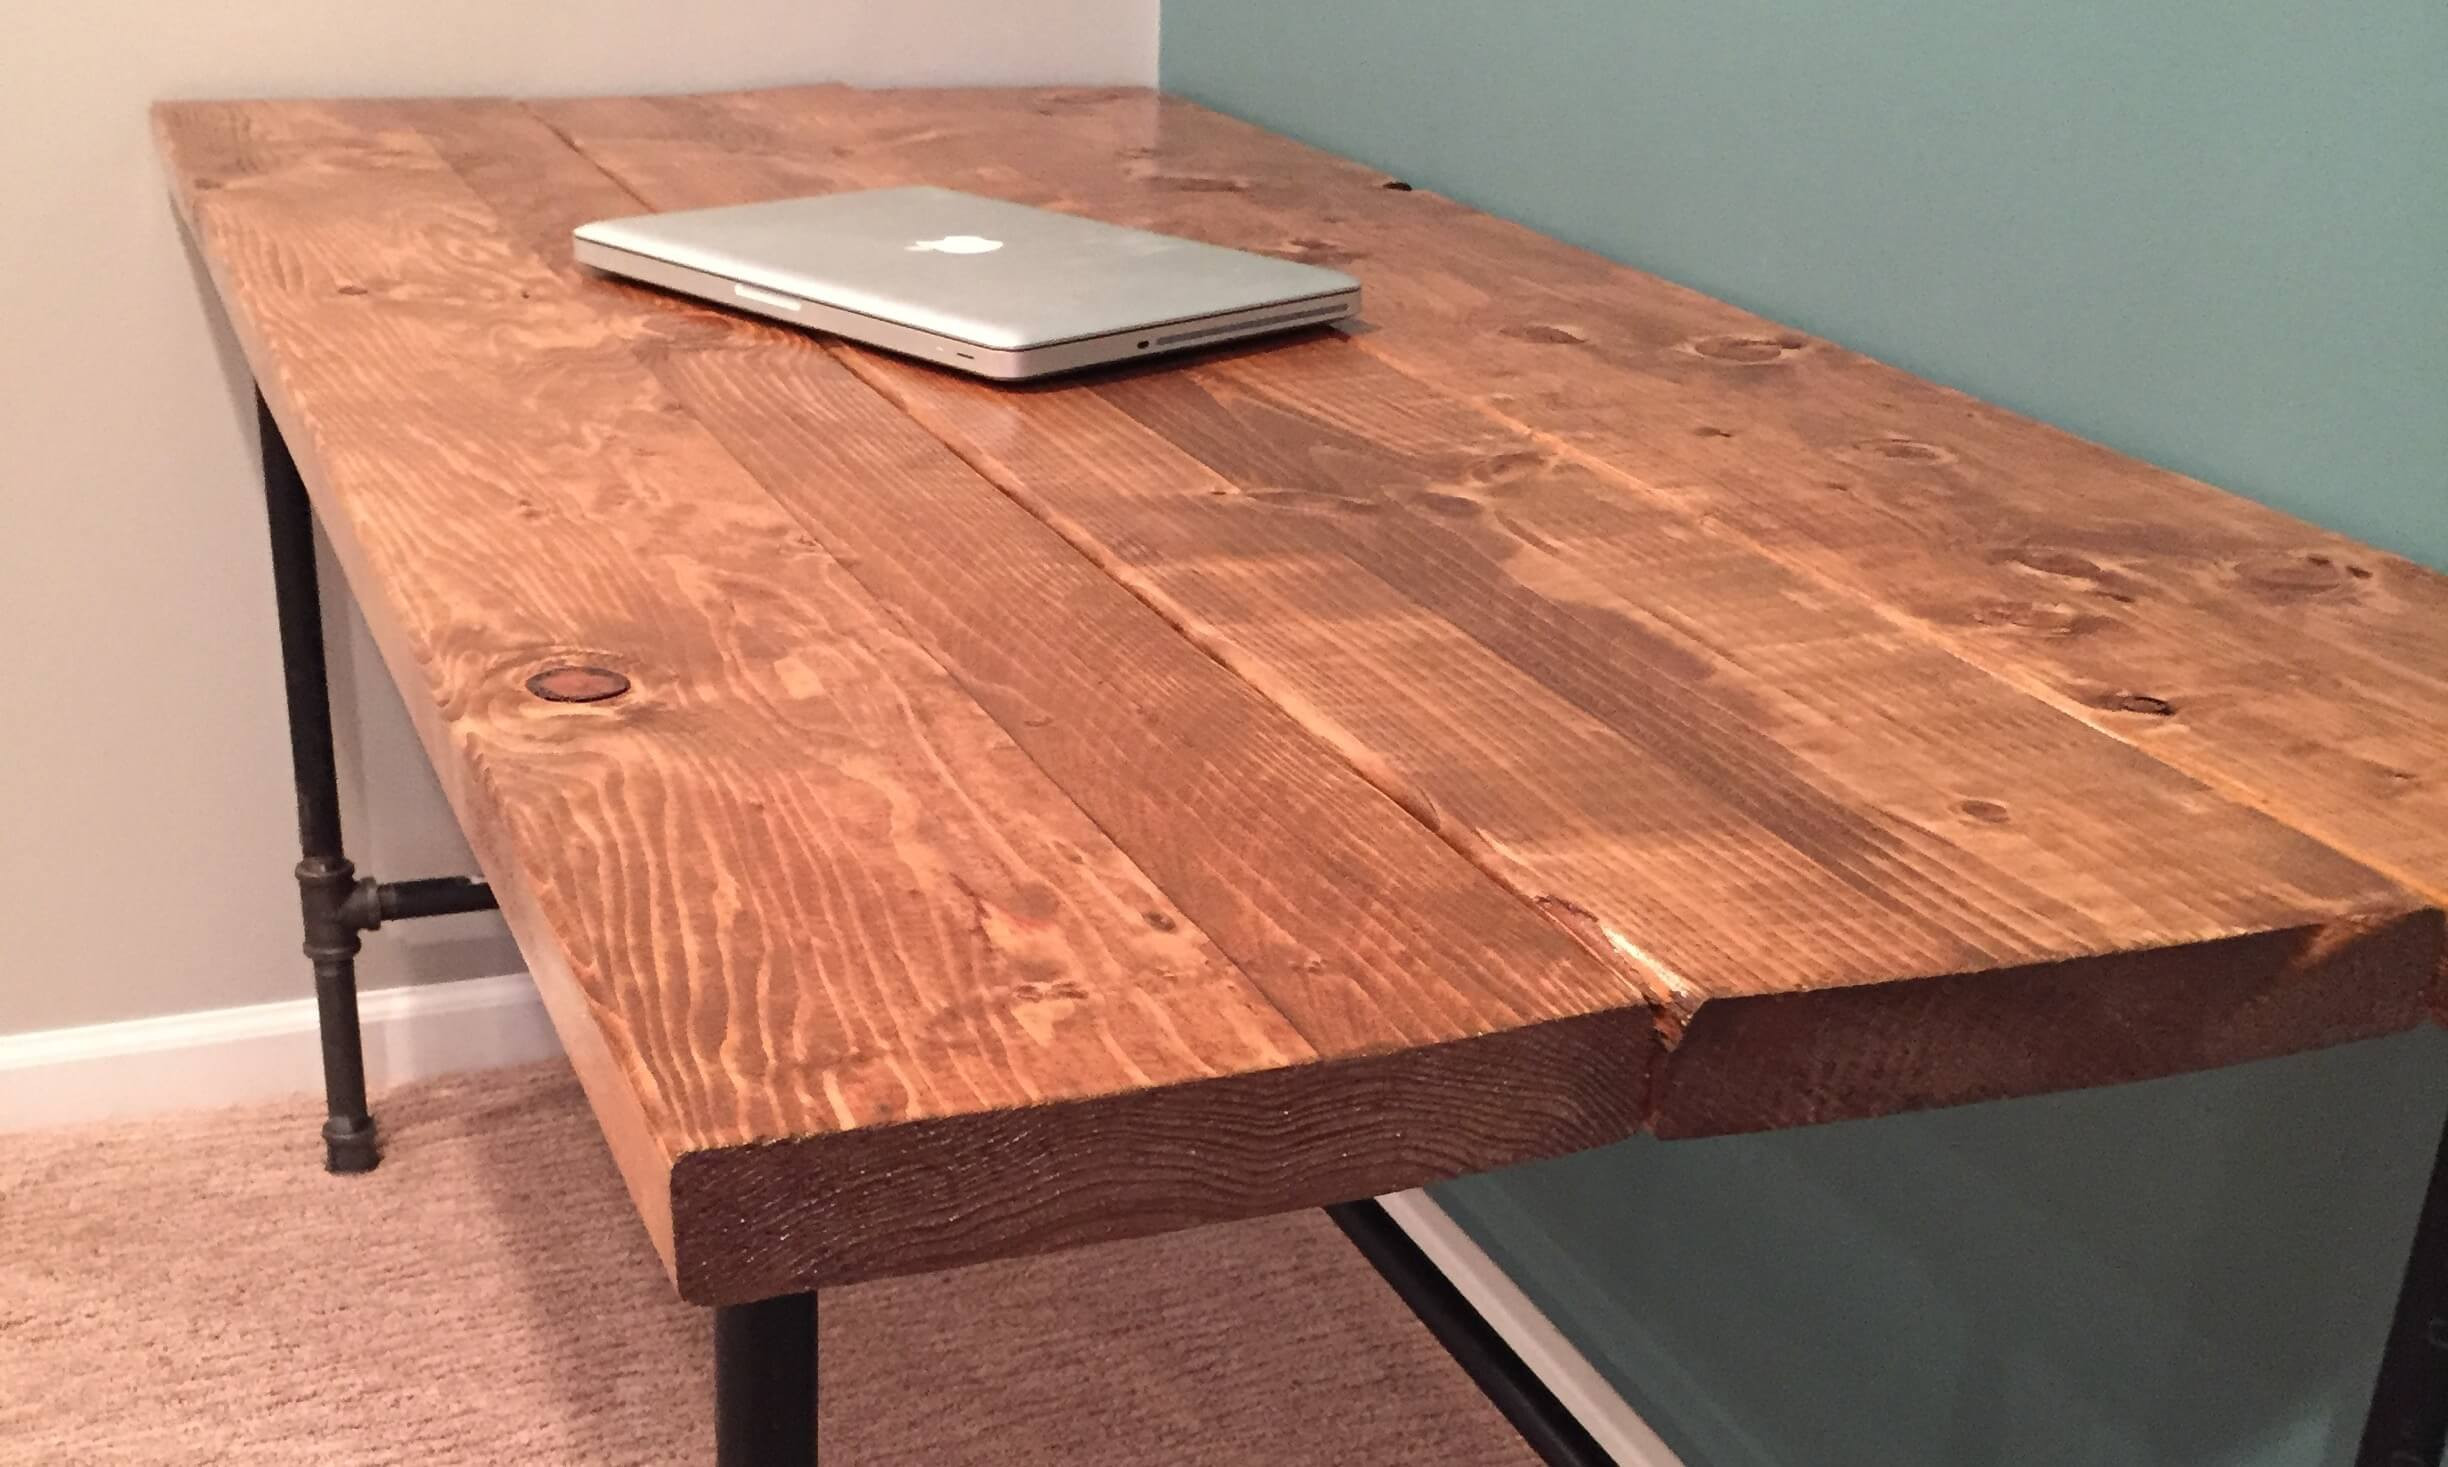 Best ideas about DIY Wood Desks . Save or Pin DIY How To Build A Desk Now.